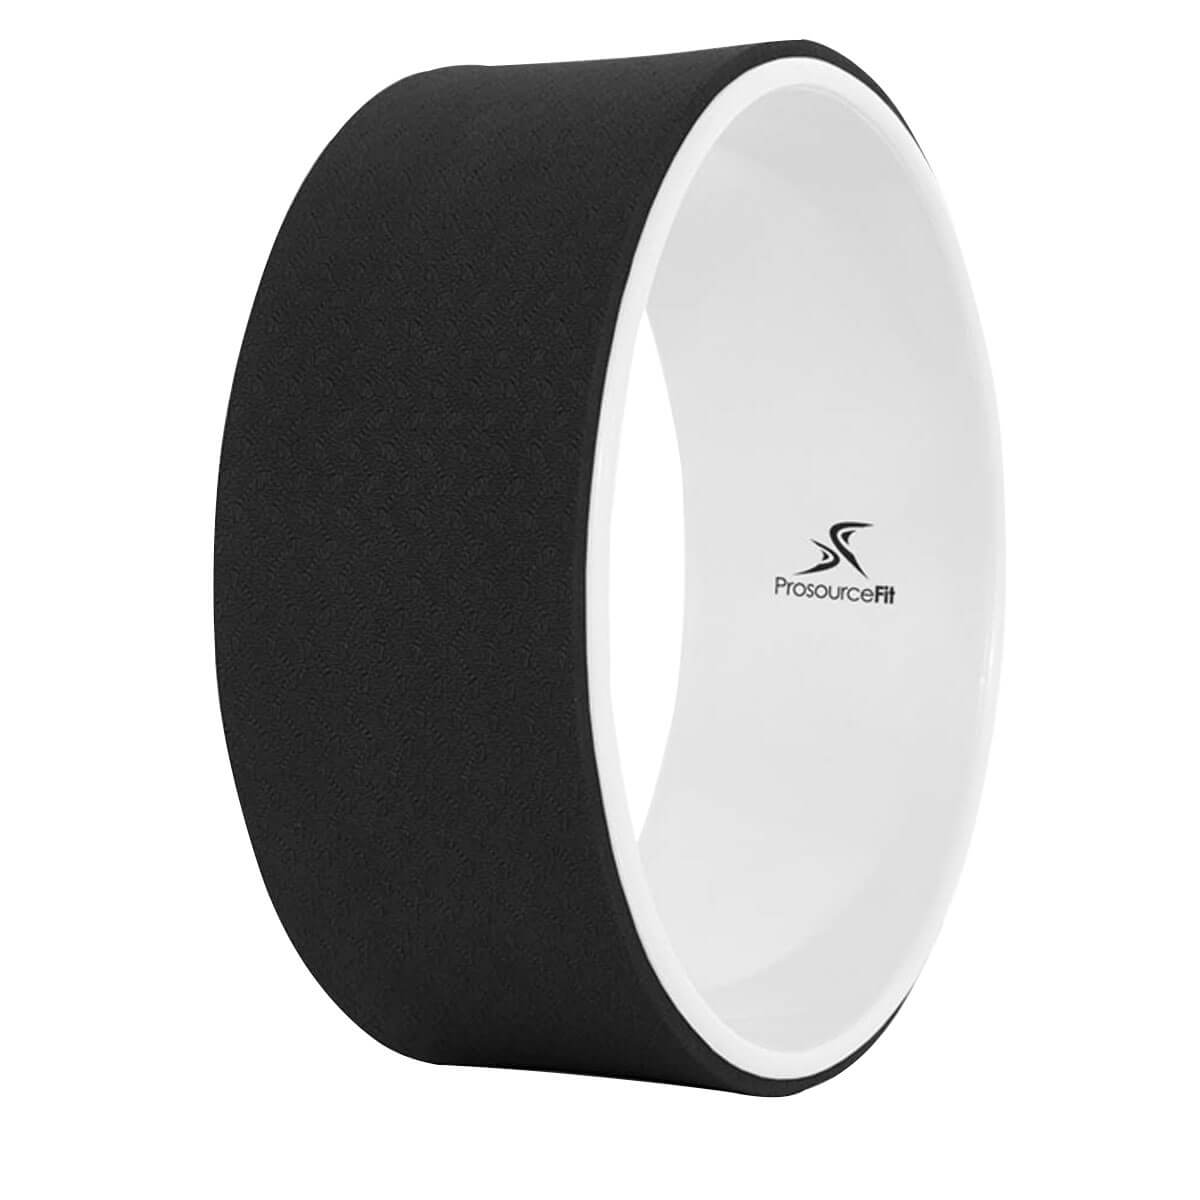 Prosource Yoga Wheel for Stretching and Support black white